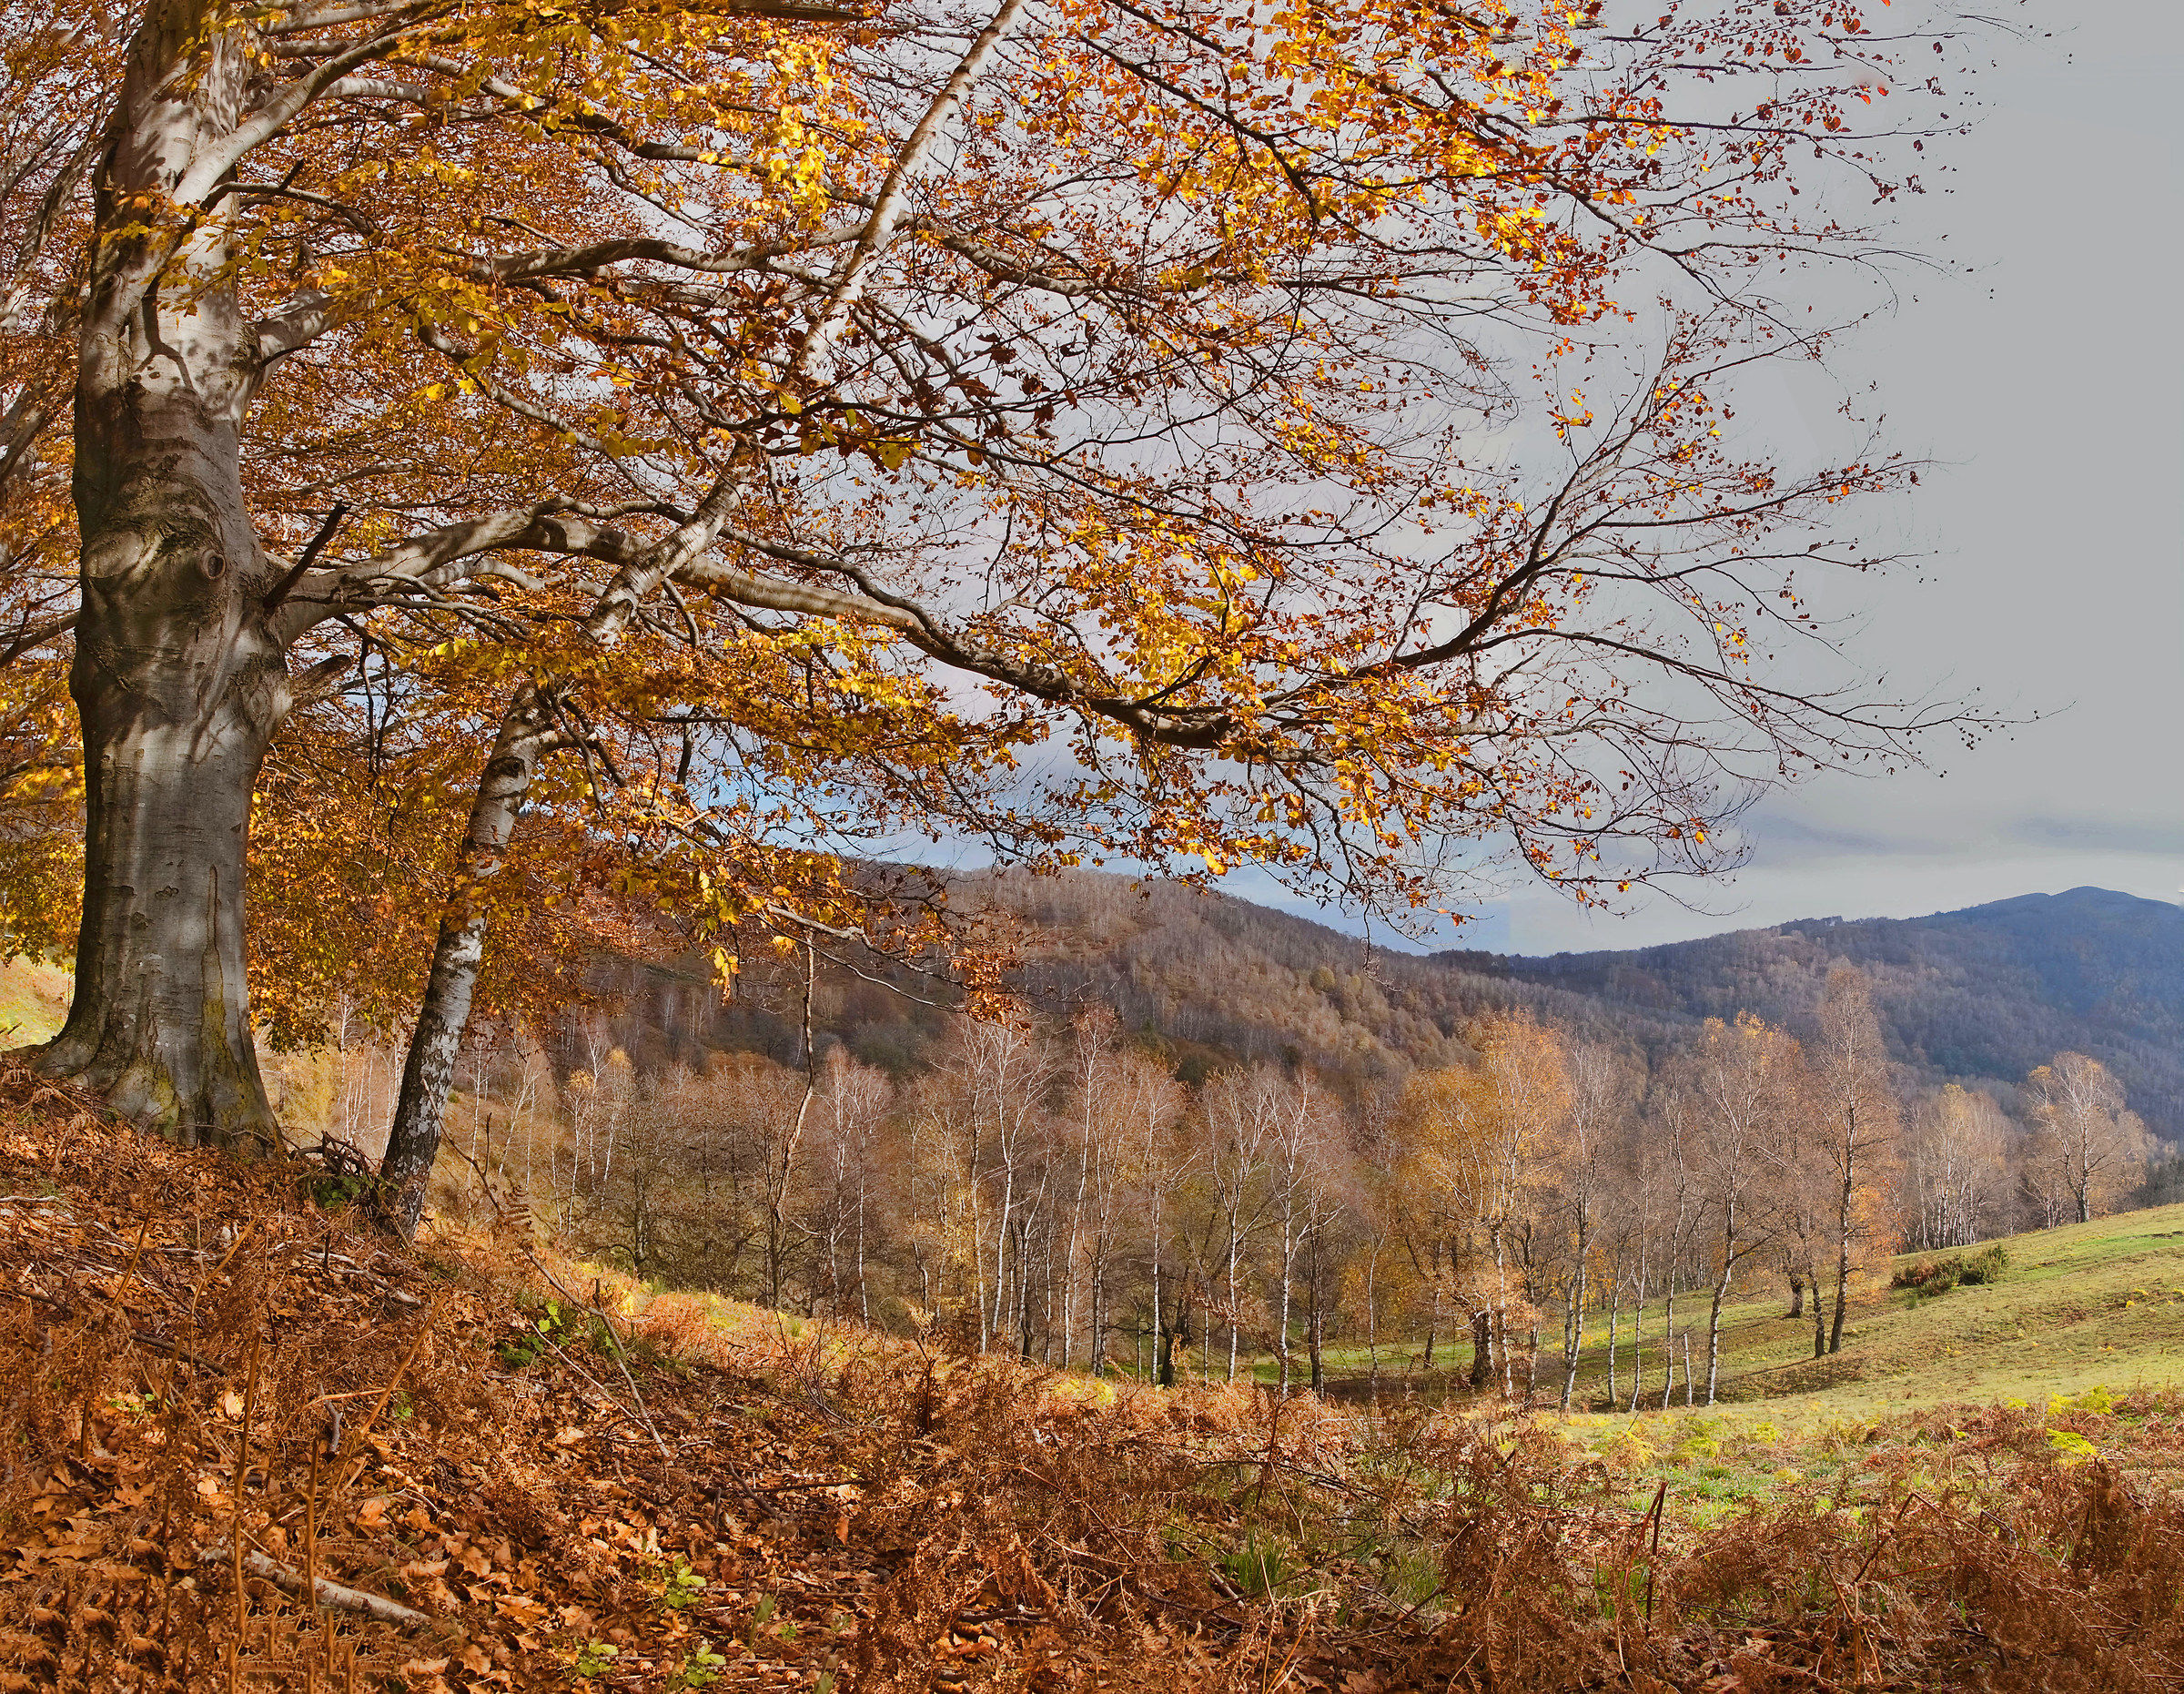 Autumn in the mountains...